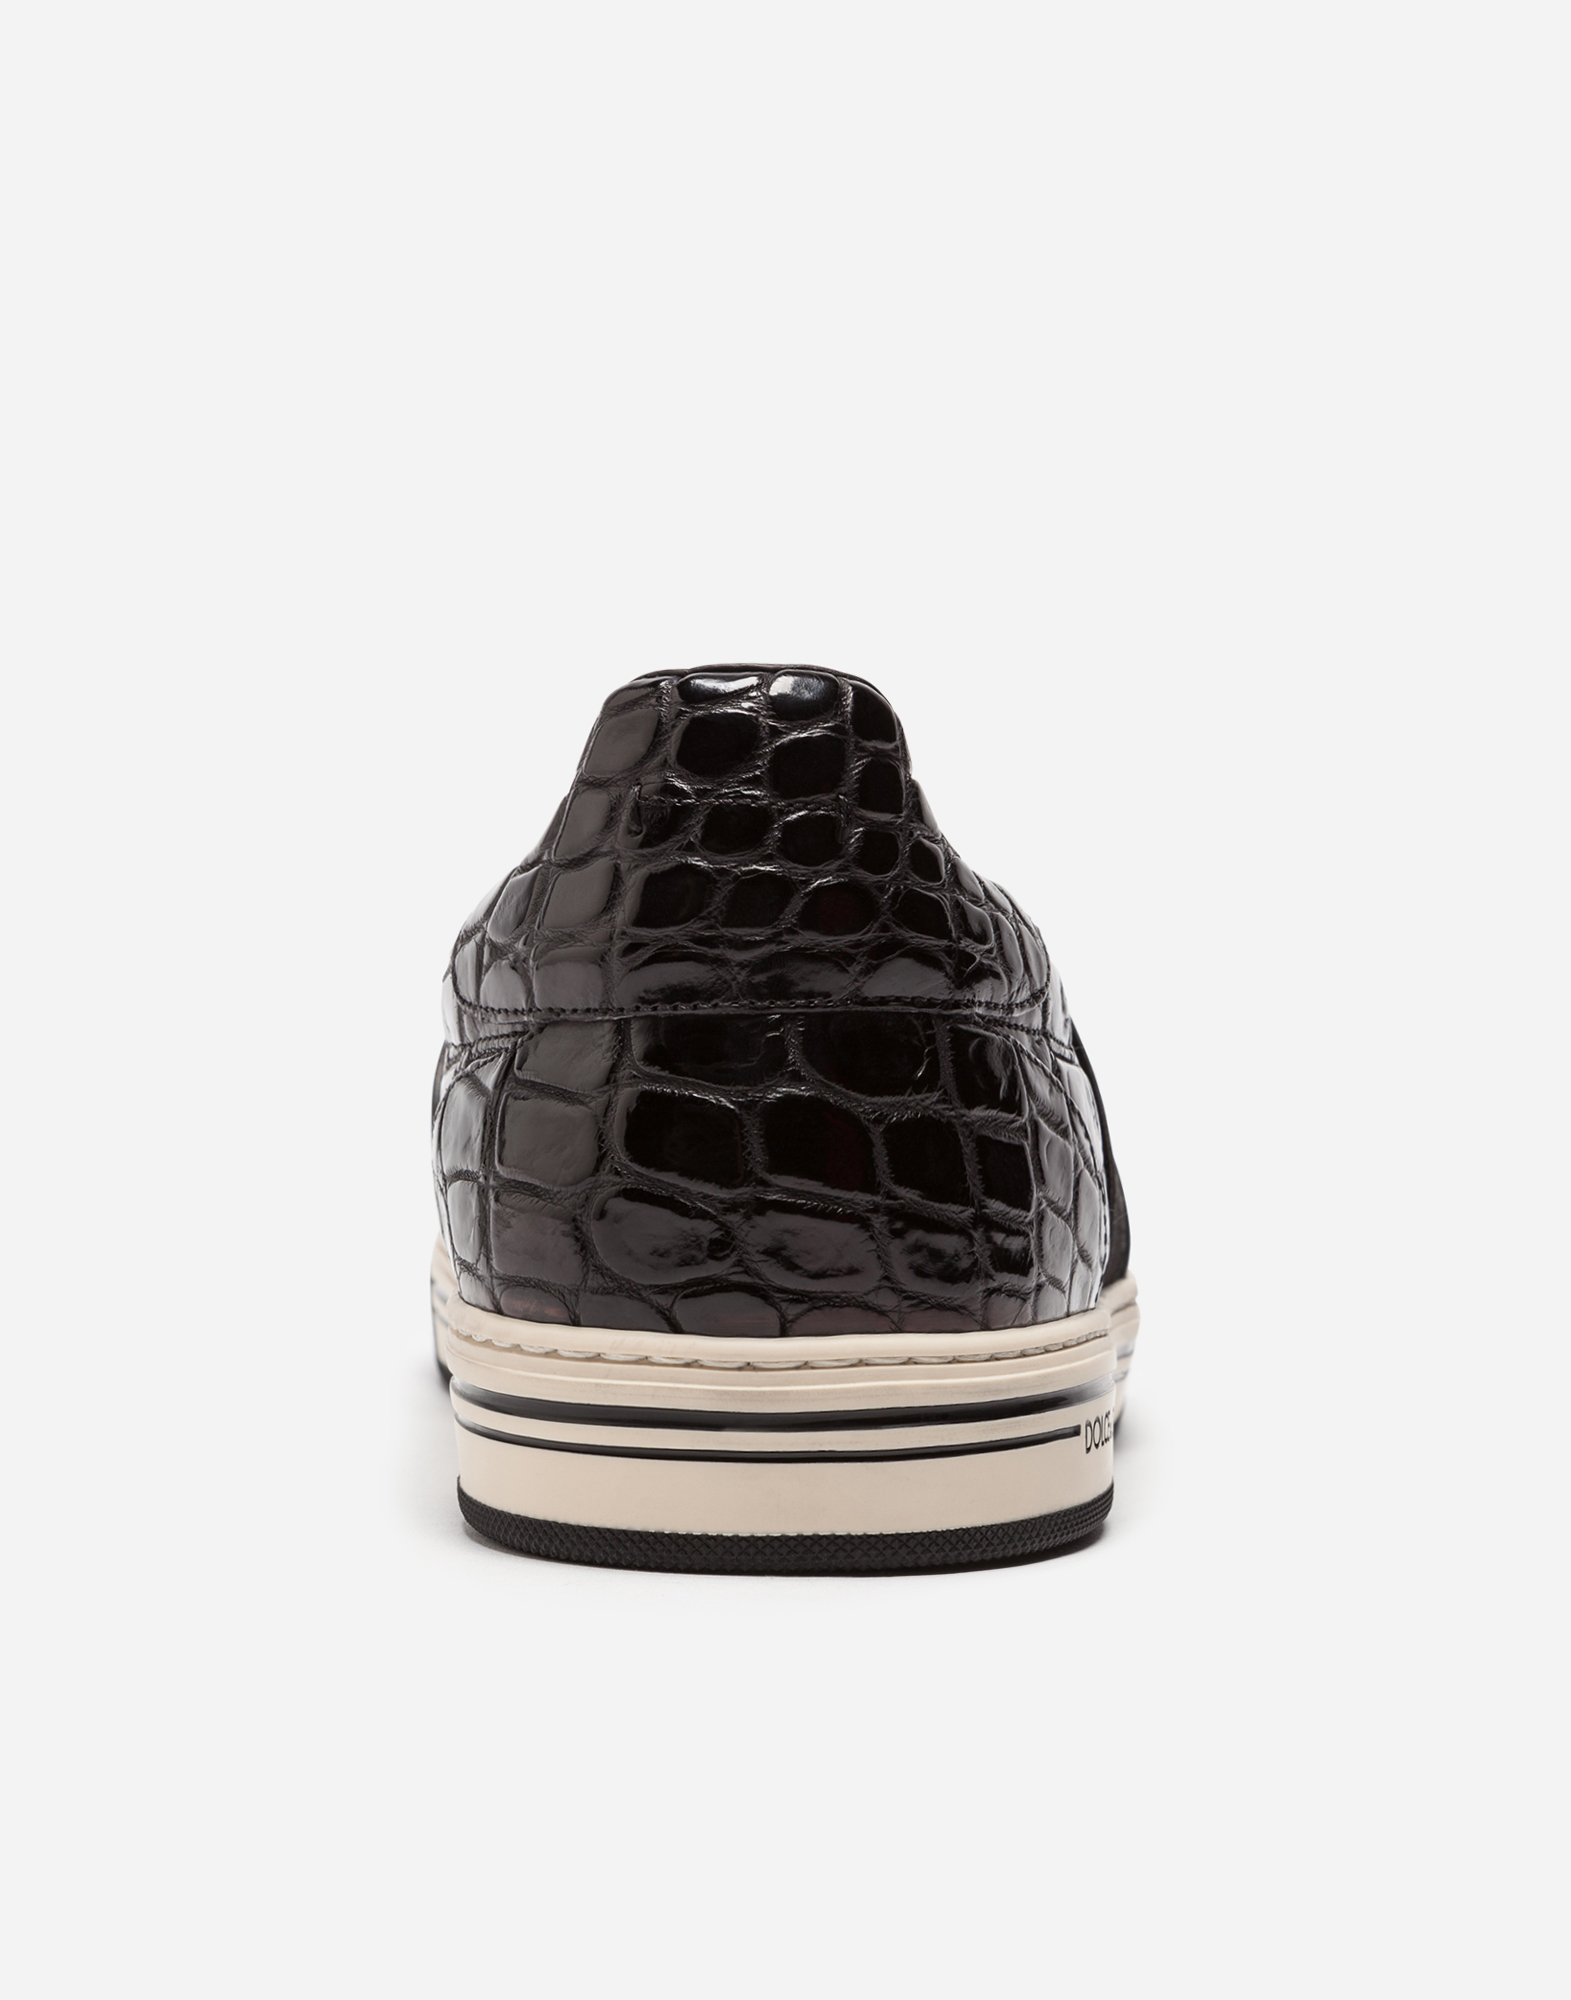 ROME SLIP-ON SNEAKERS IN CROCODILE LEATHER